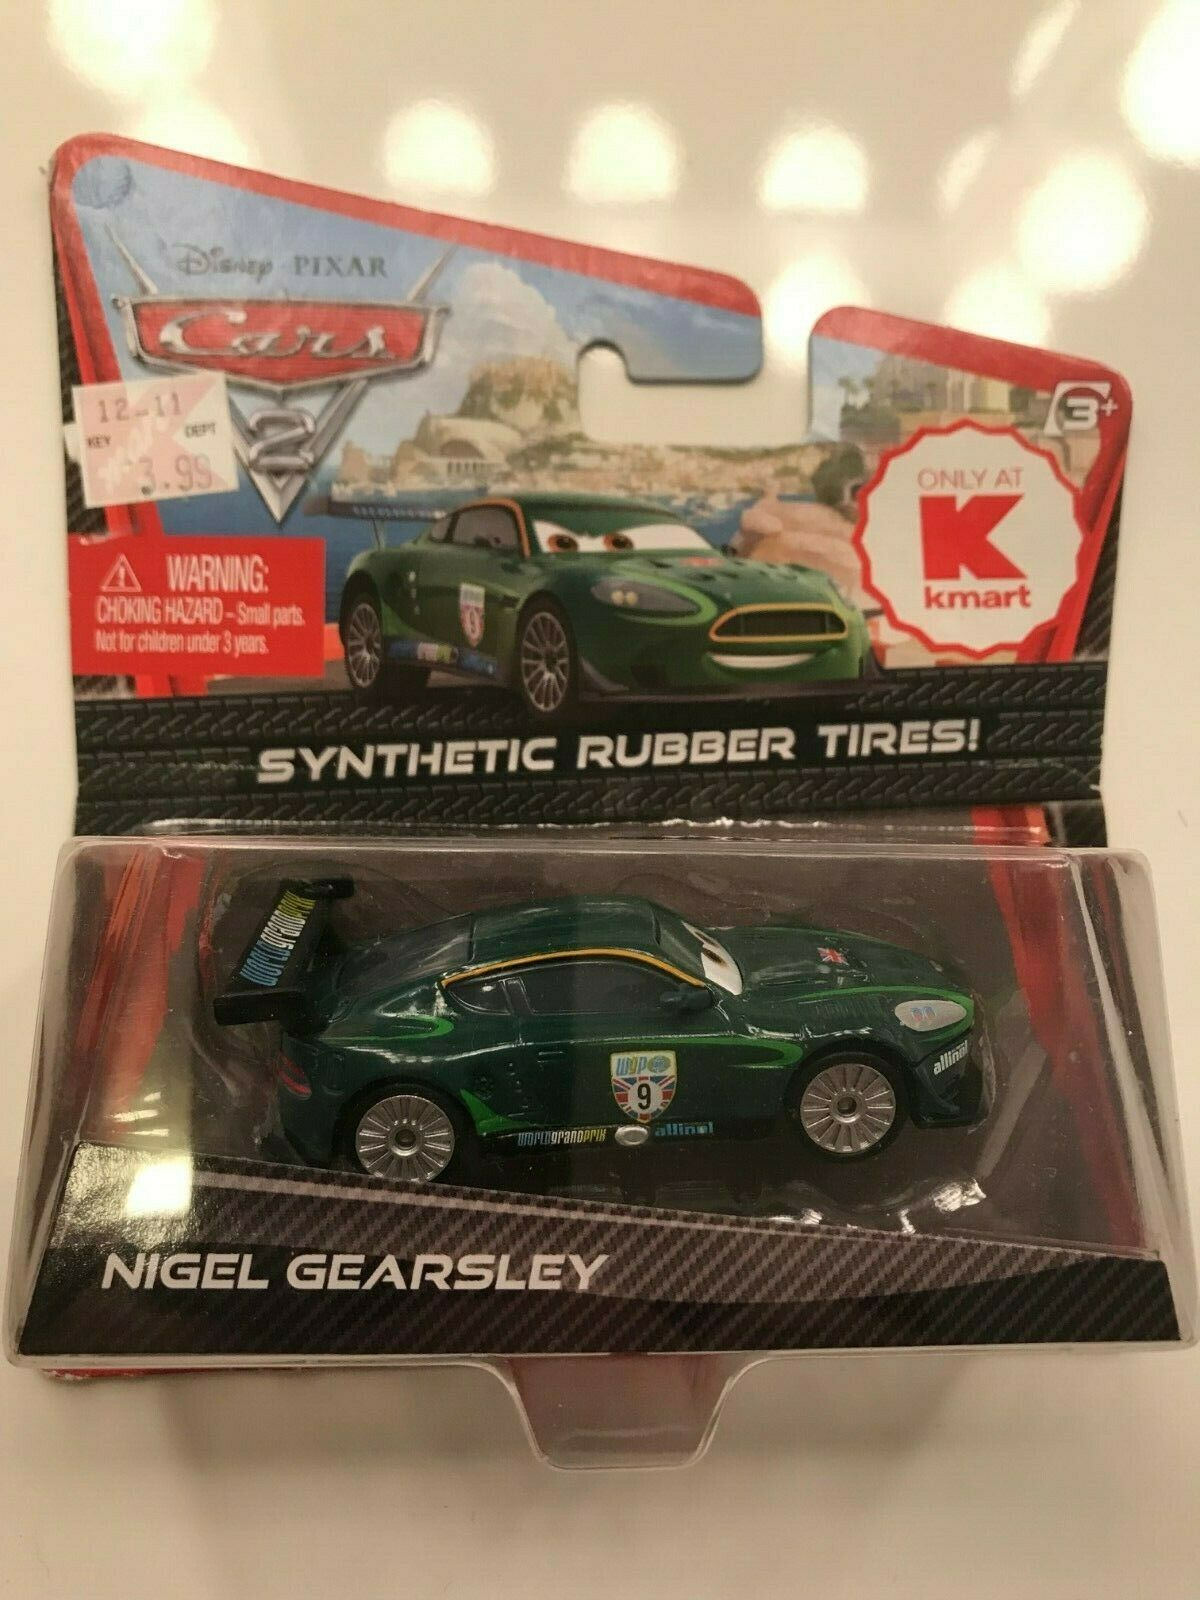 2011 DISNEY PIXAR CARS THE KING SYNTHETIC RUBBER TIRES 1//55 SCALE  KAMRT